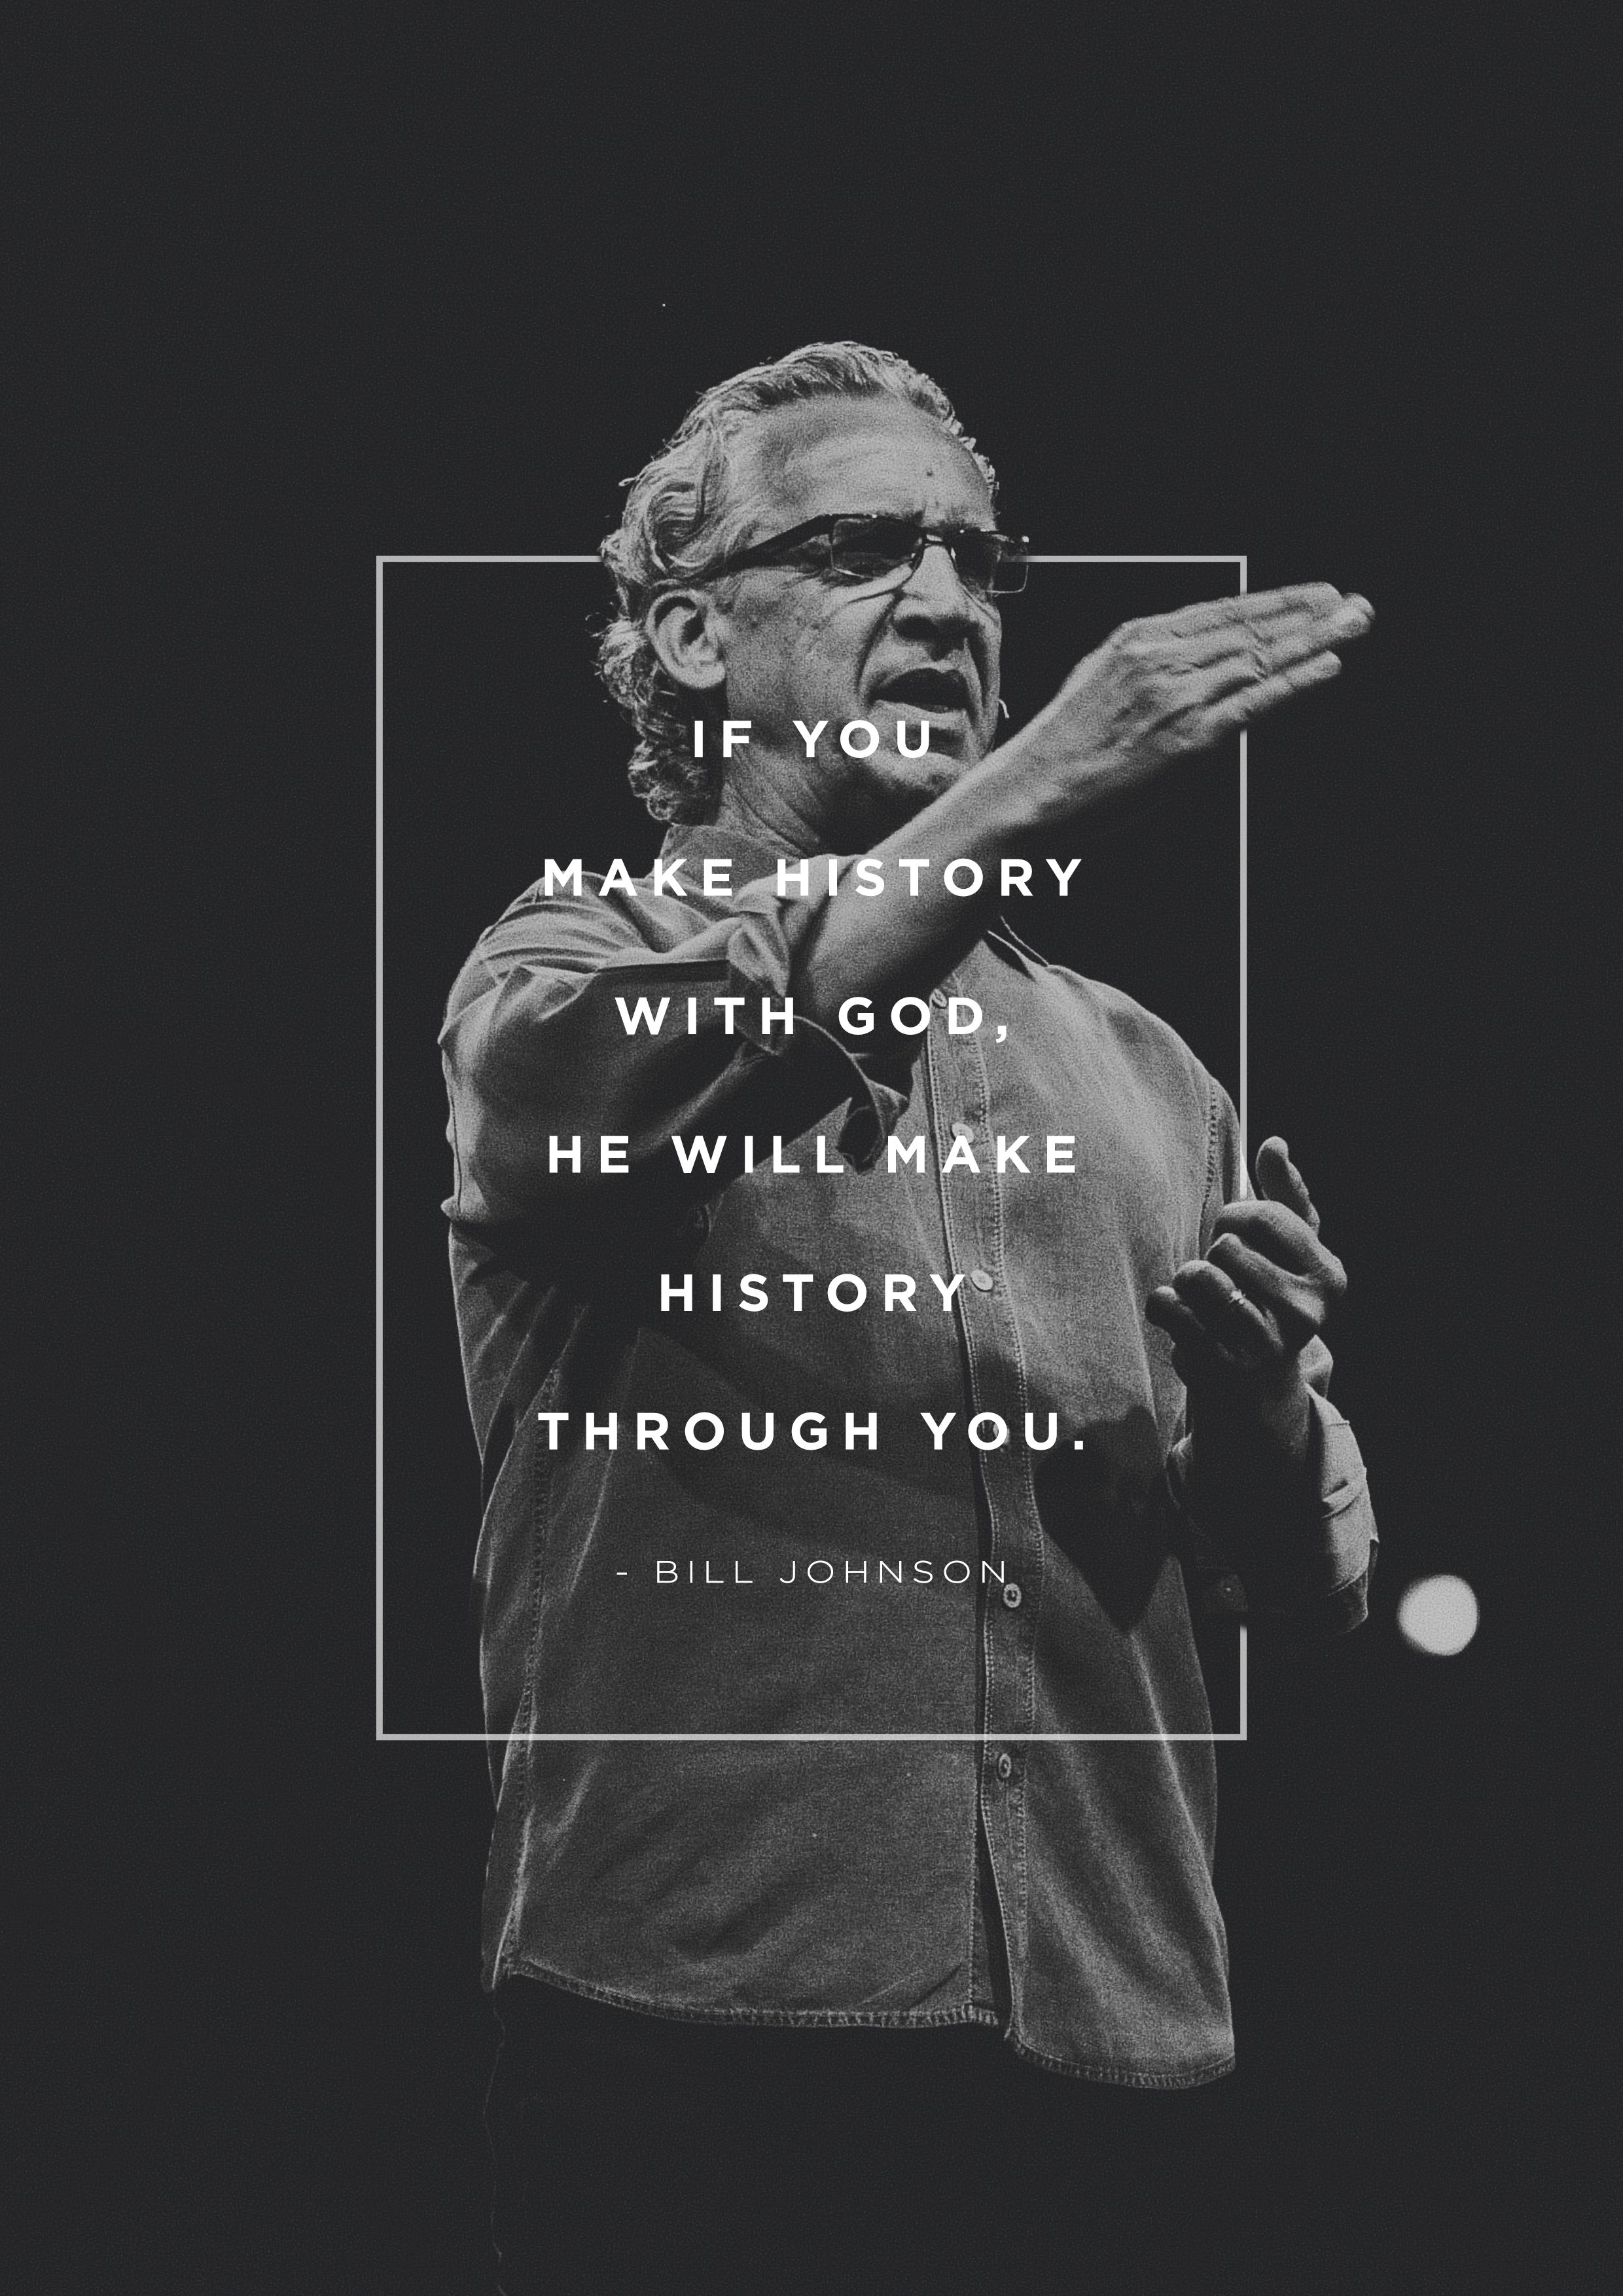 Pin by Rayna Karise on yahweh | Bill johnson quote, Quotes, God